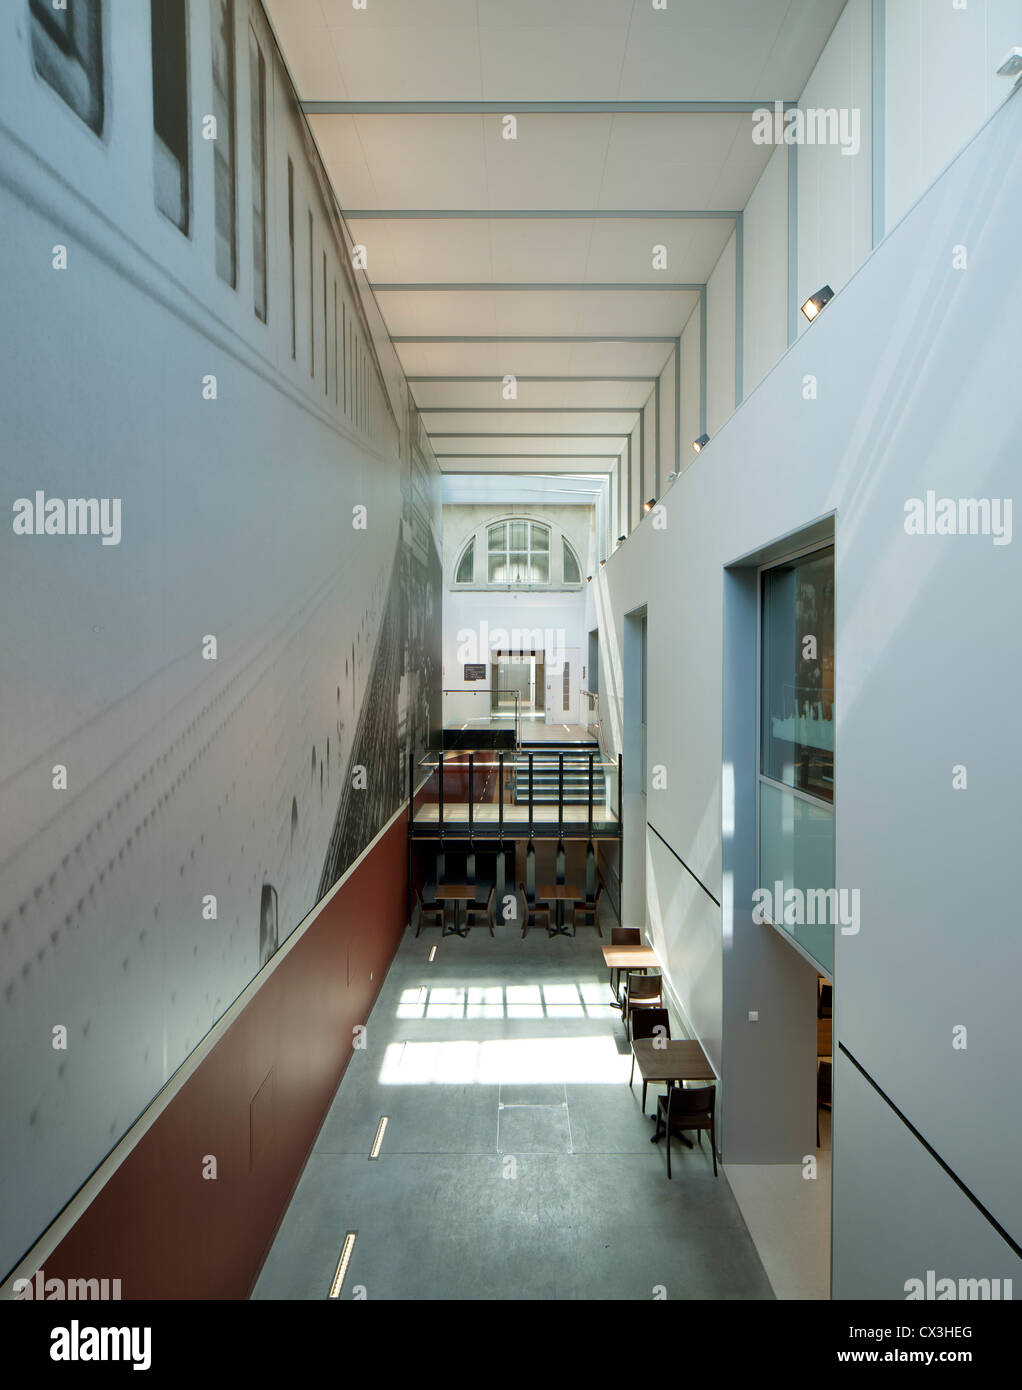 SeaCity Museum, Southampton, United Kingdom. Architect: Wilkinson Eyre Architects, 2012. Interior view of the museum. - Stock Image